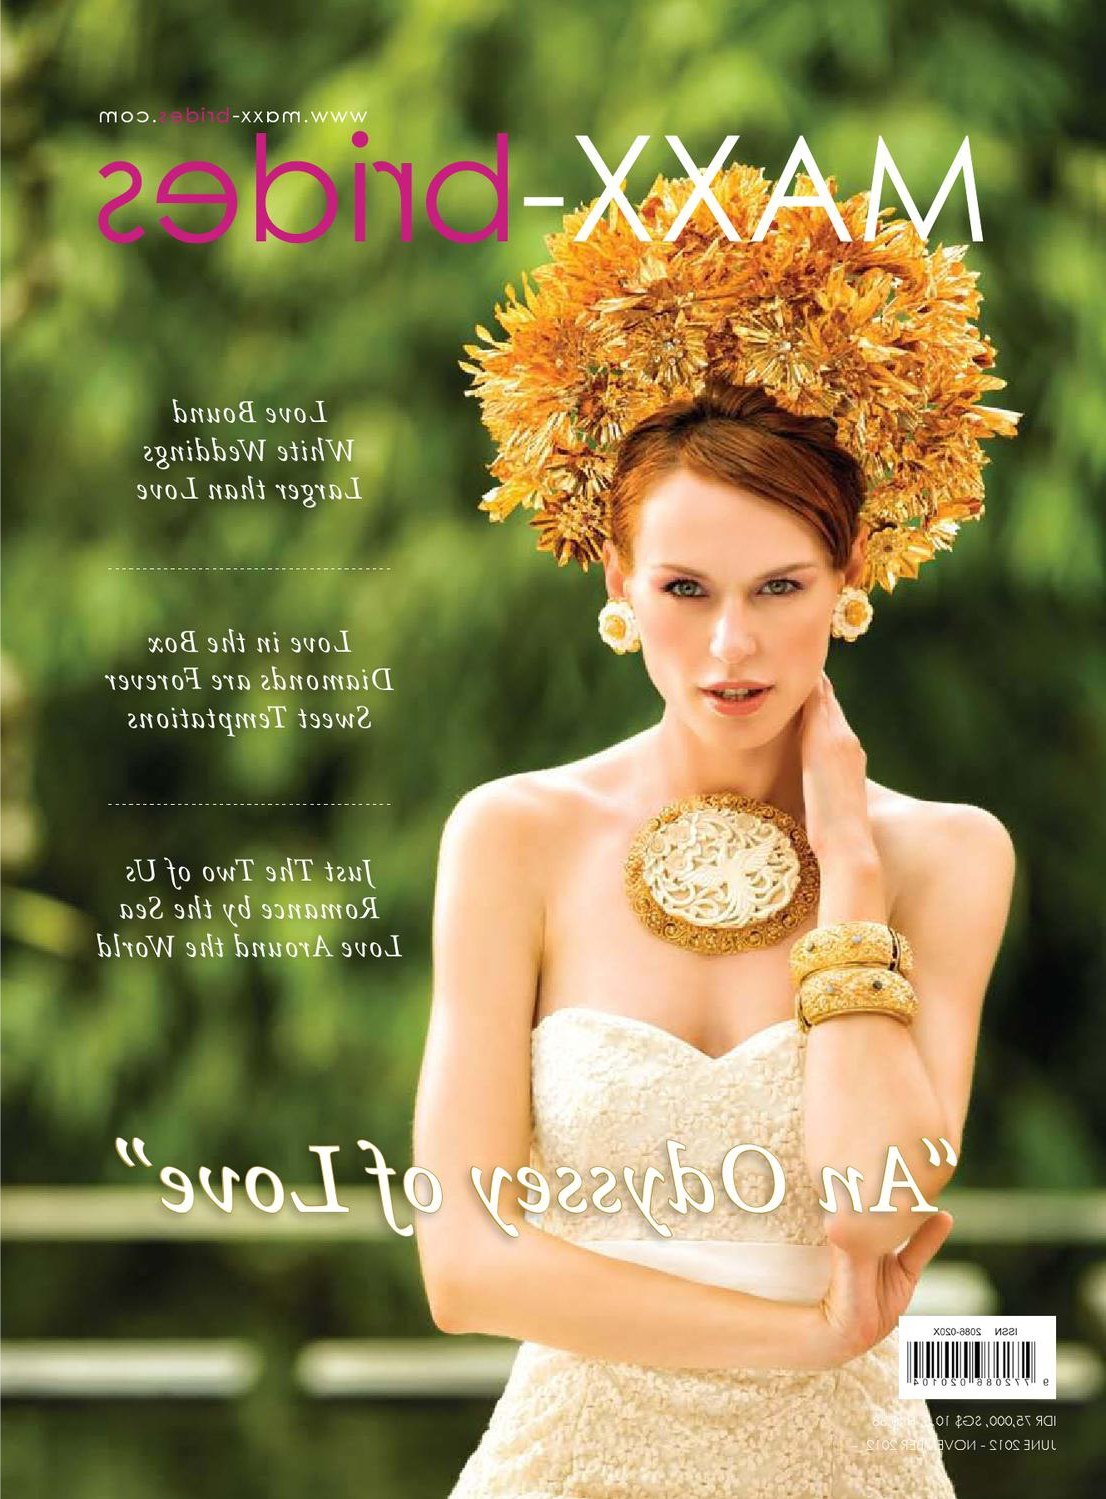 Bentuk Kebaya Bridesmaid Hijab Wddj Maxx Brides Juni November Wedding Magazine by Dika Rachman